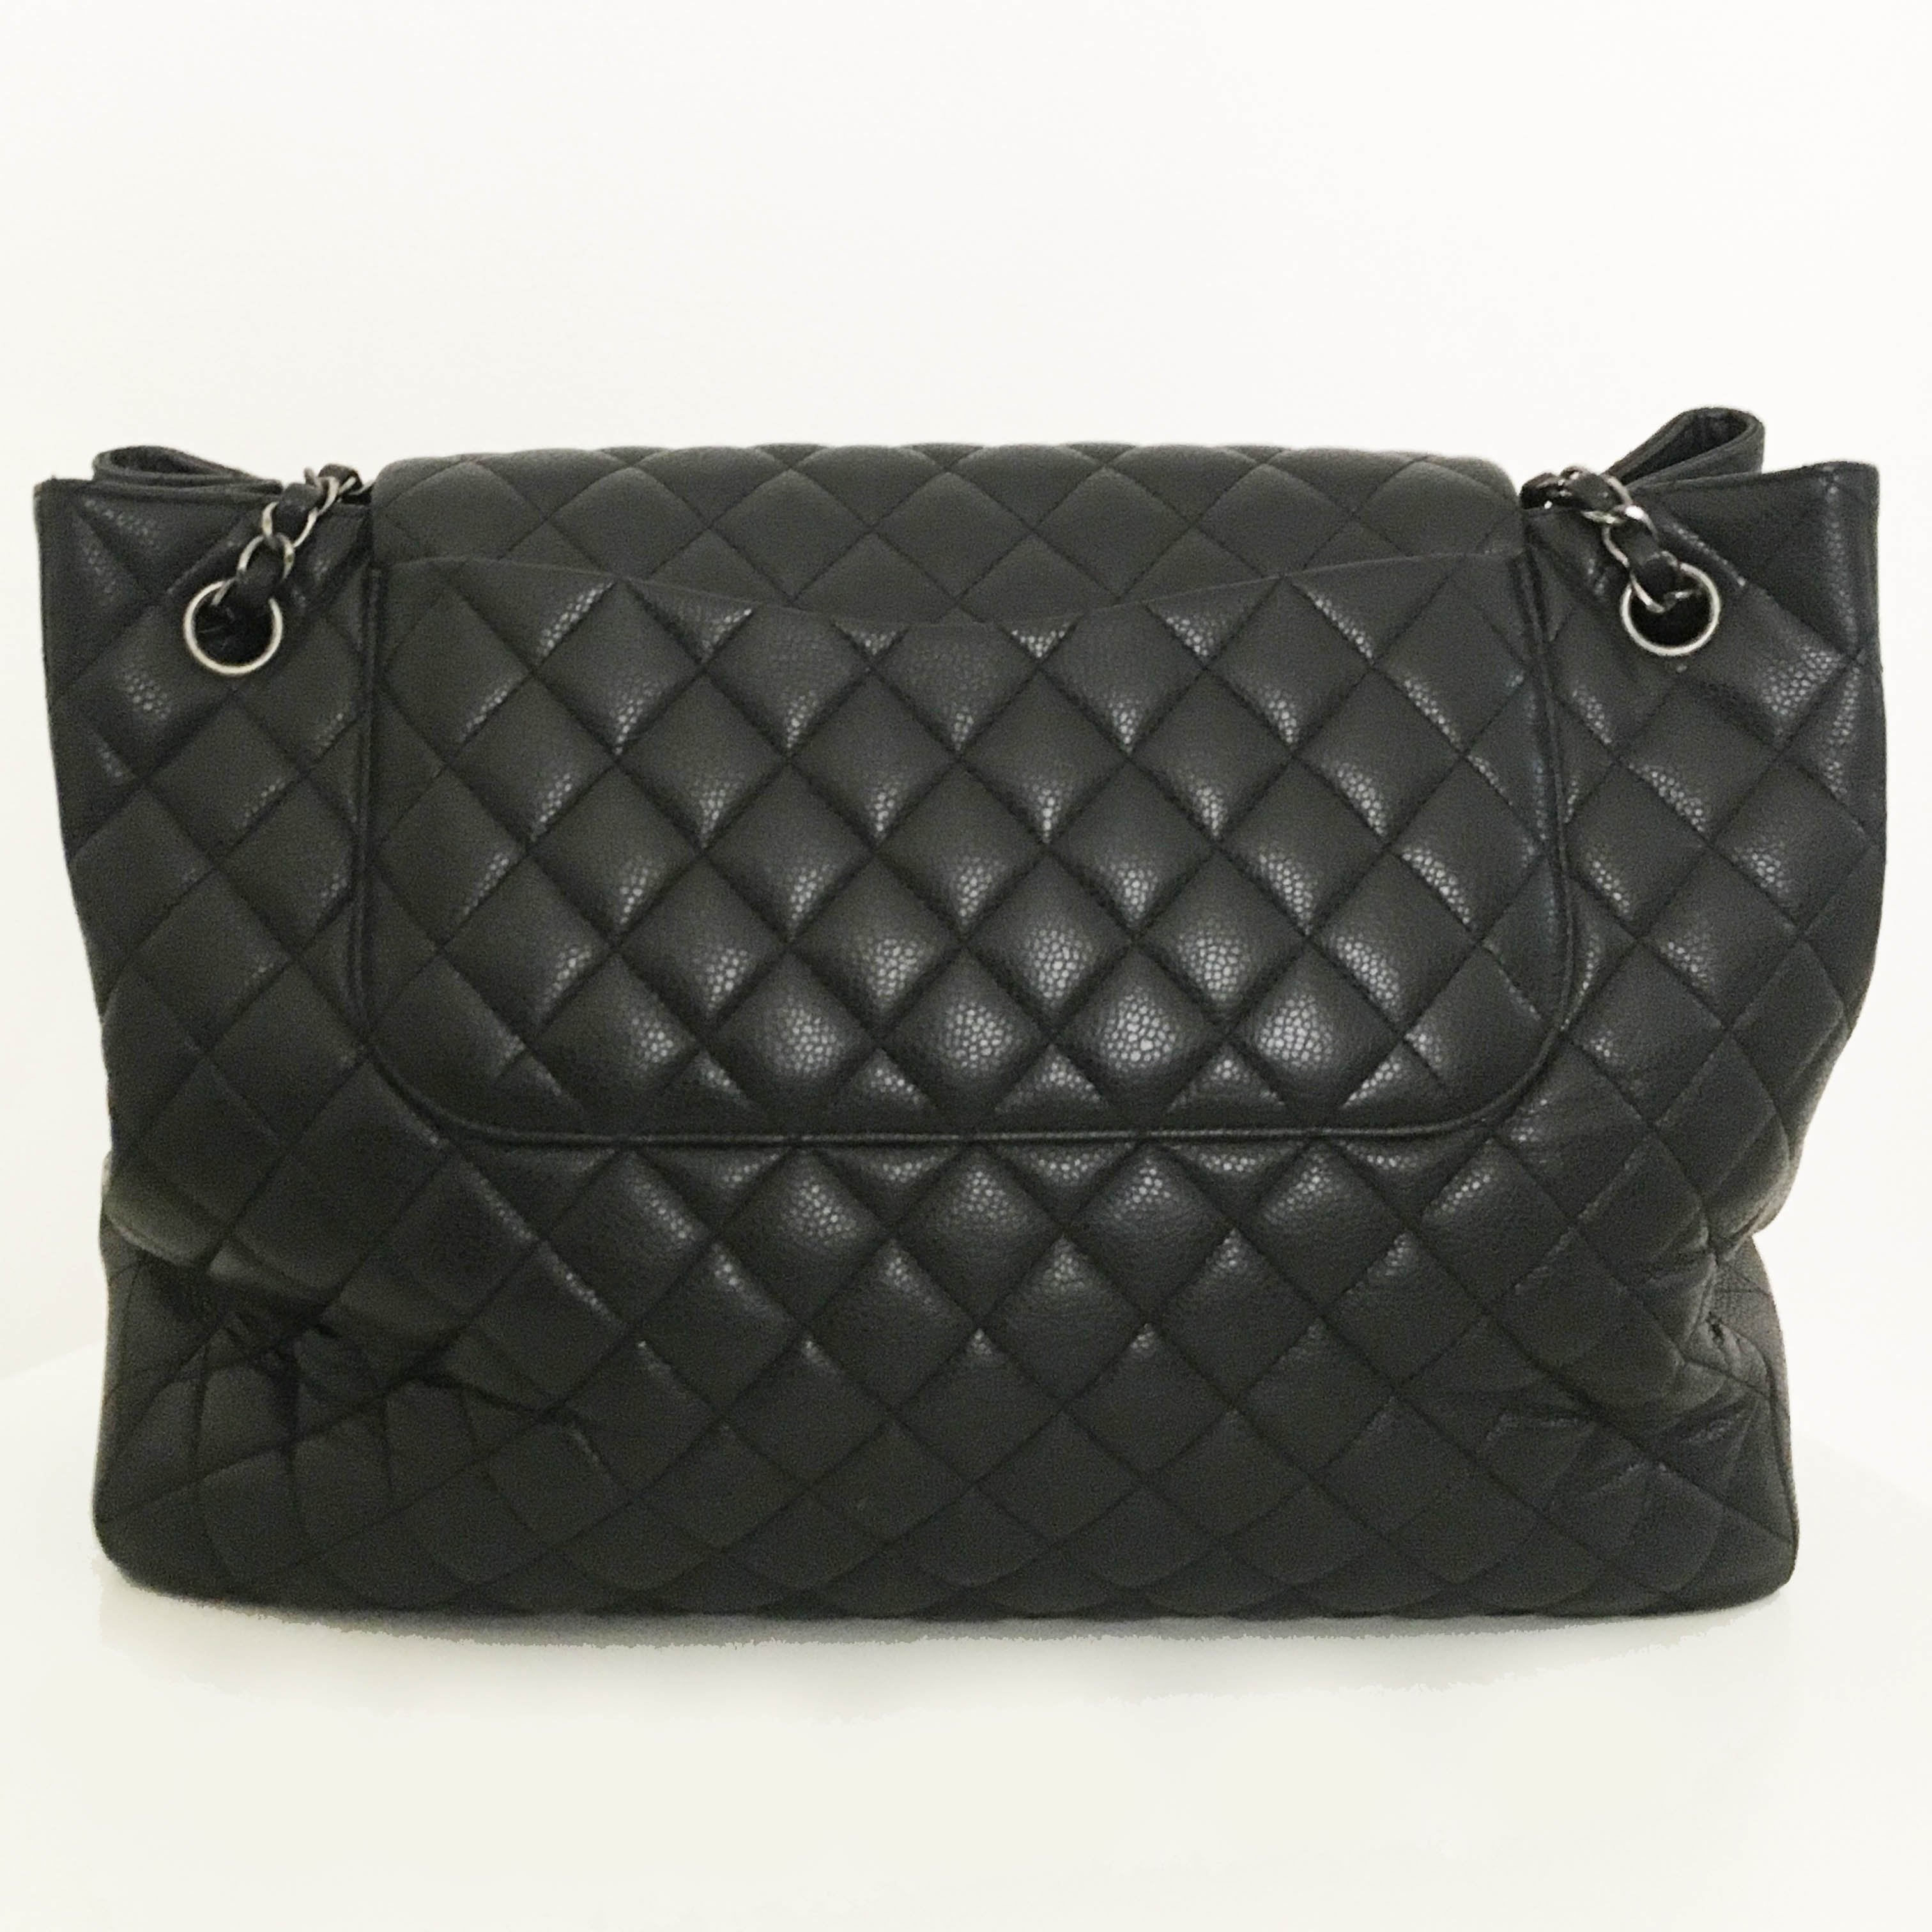 Chanel Large Black Caviar Leather Cruise Shopping Bag